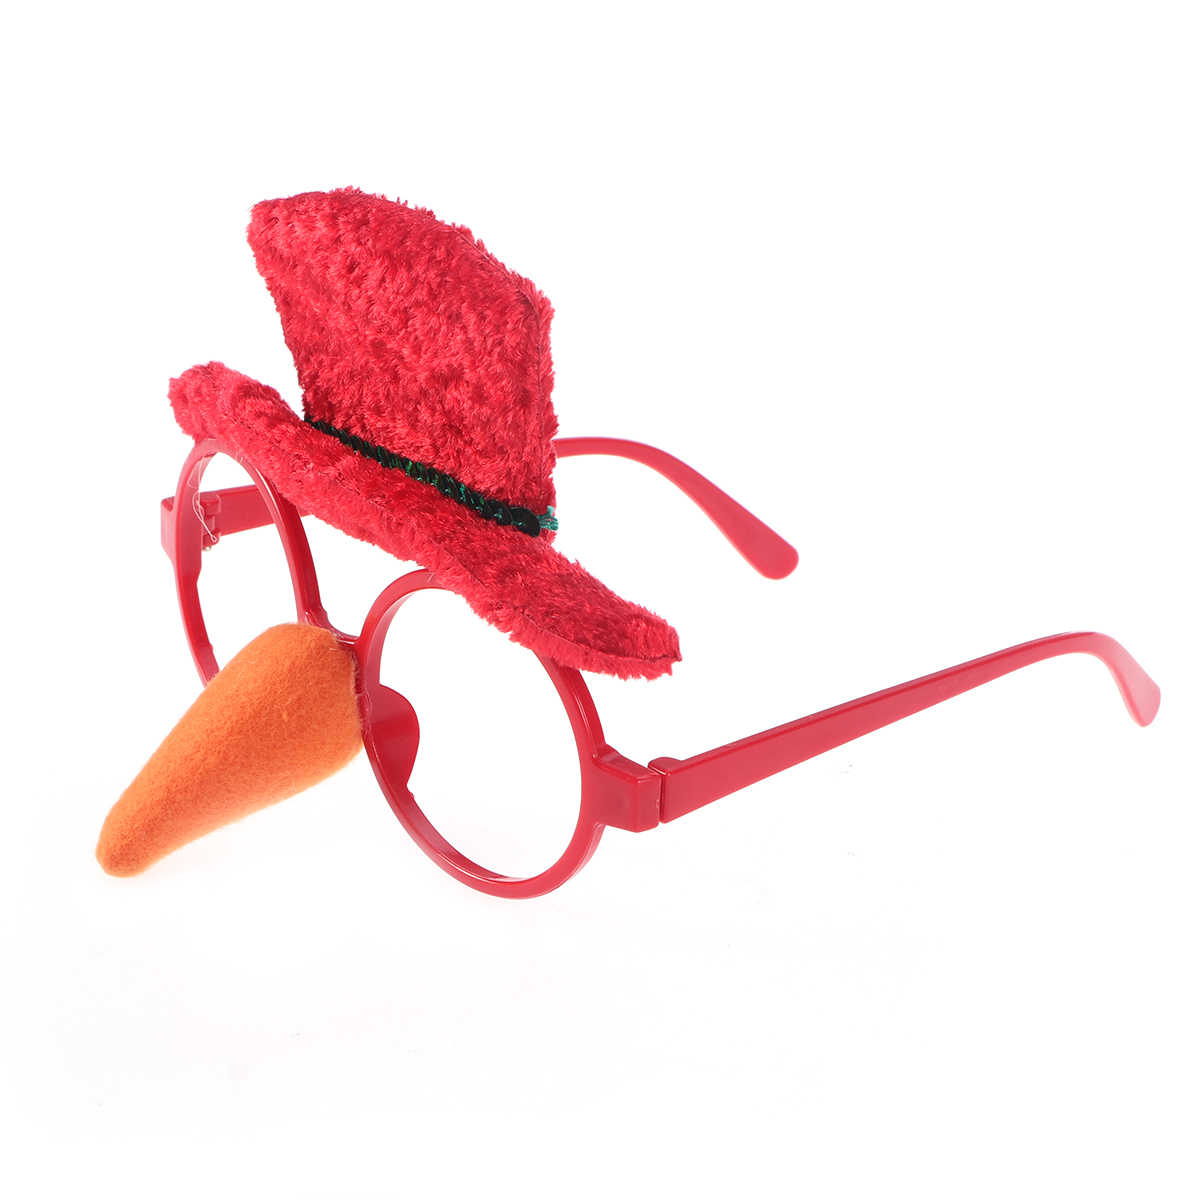 Christmas Fancy Dress Funny.Christmas Fancy Dress Party Funny Glasses Frame Sunglasses Novelty Costume Ornaments Decoration Gifts Glasses Without Lenses